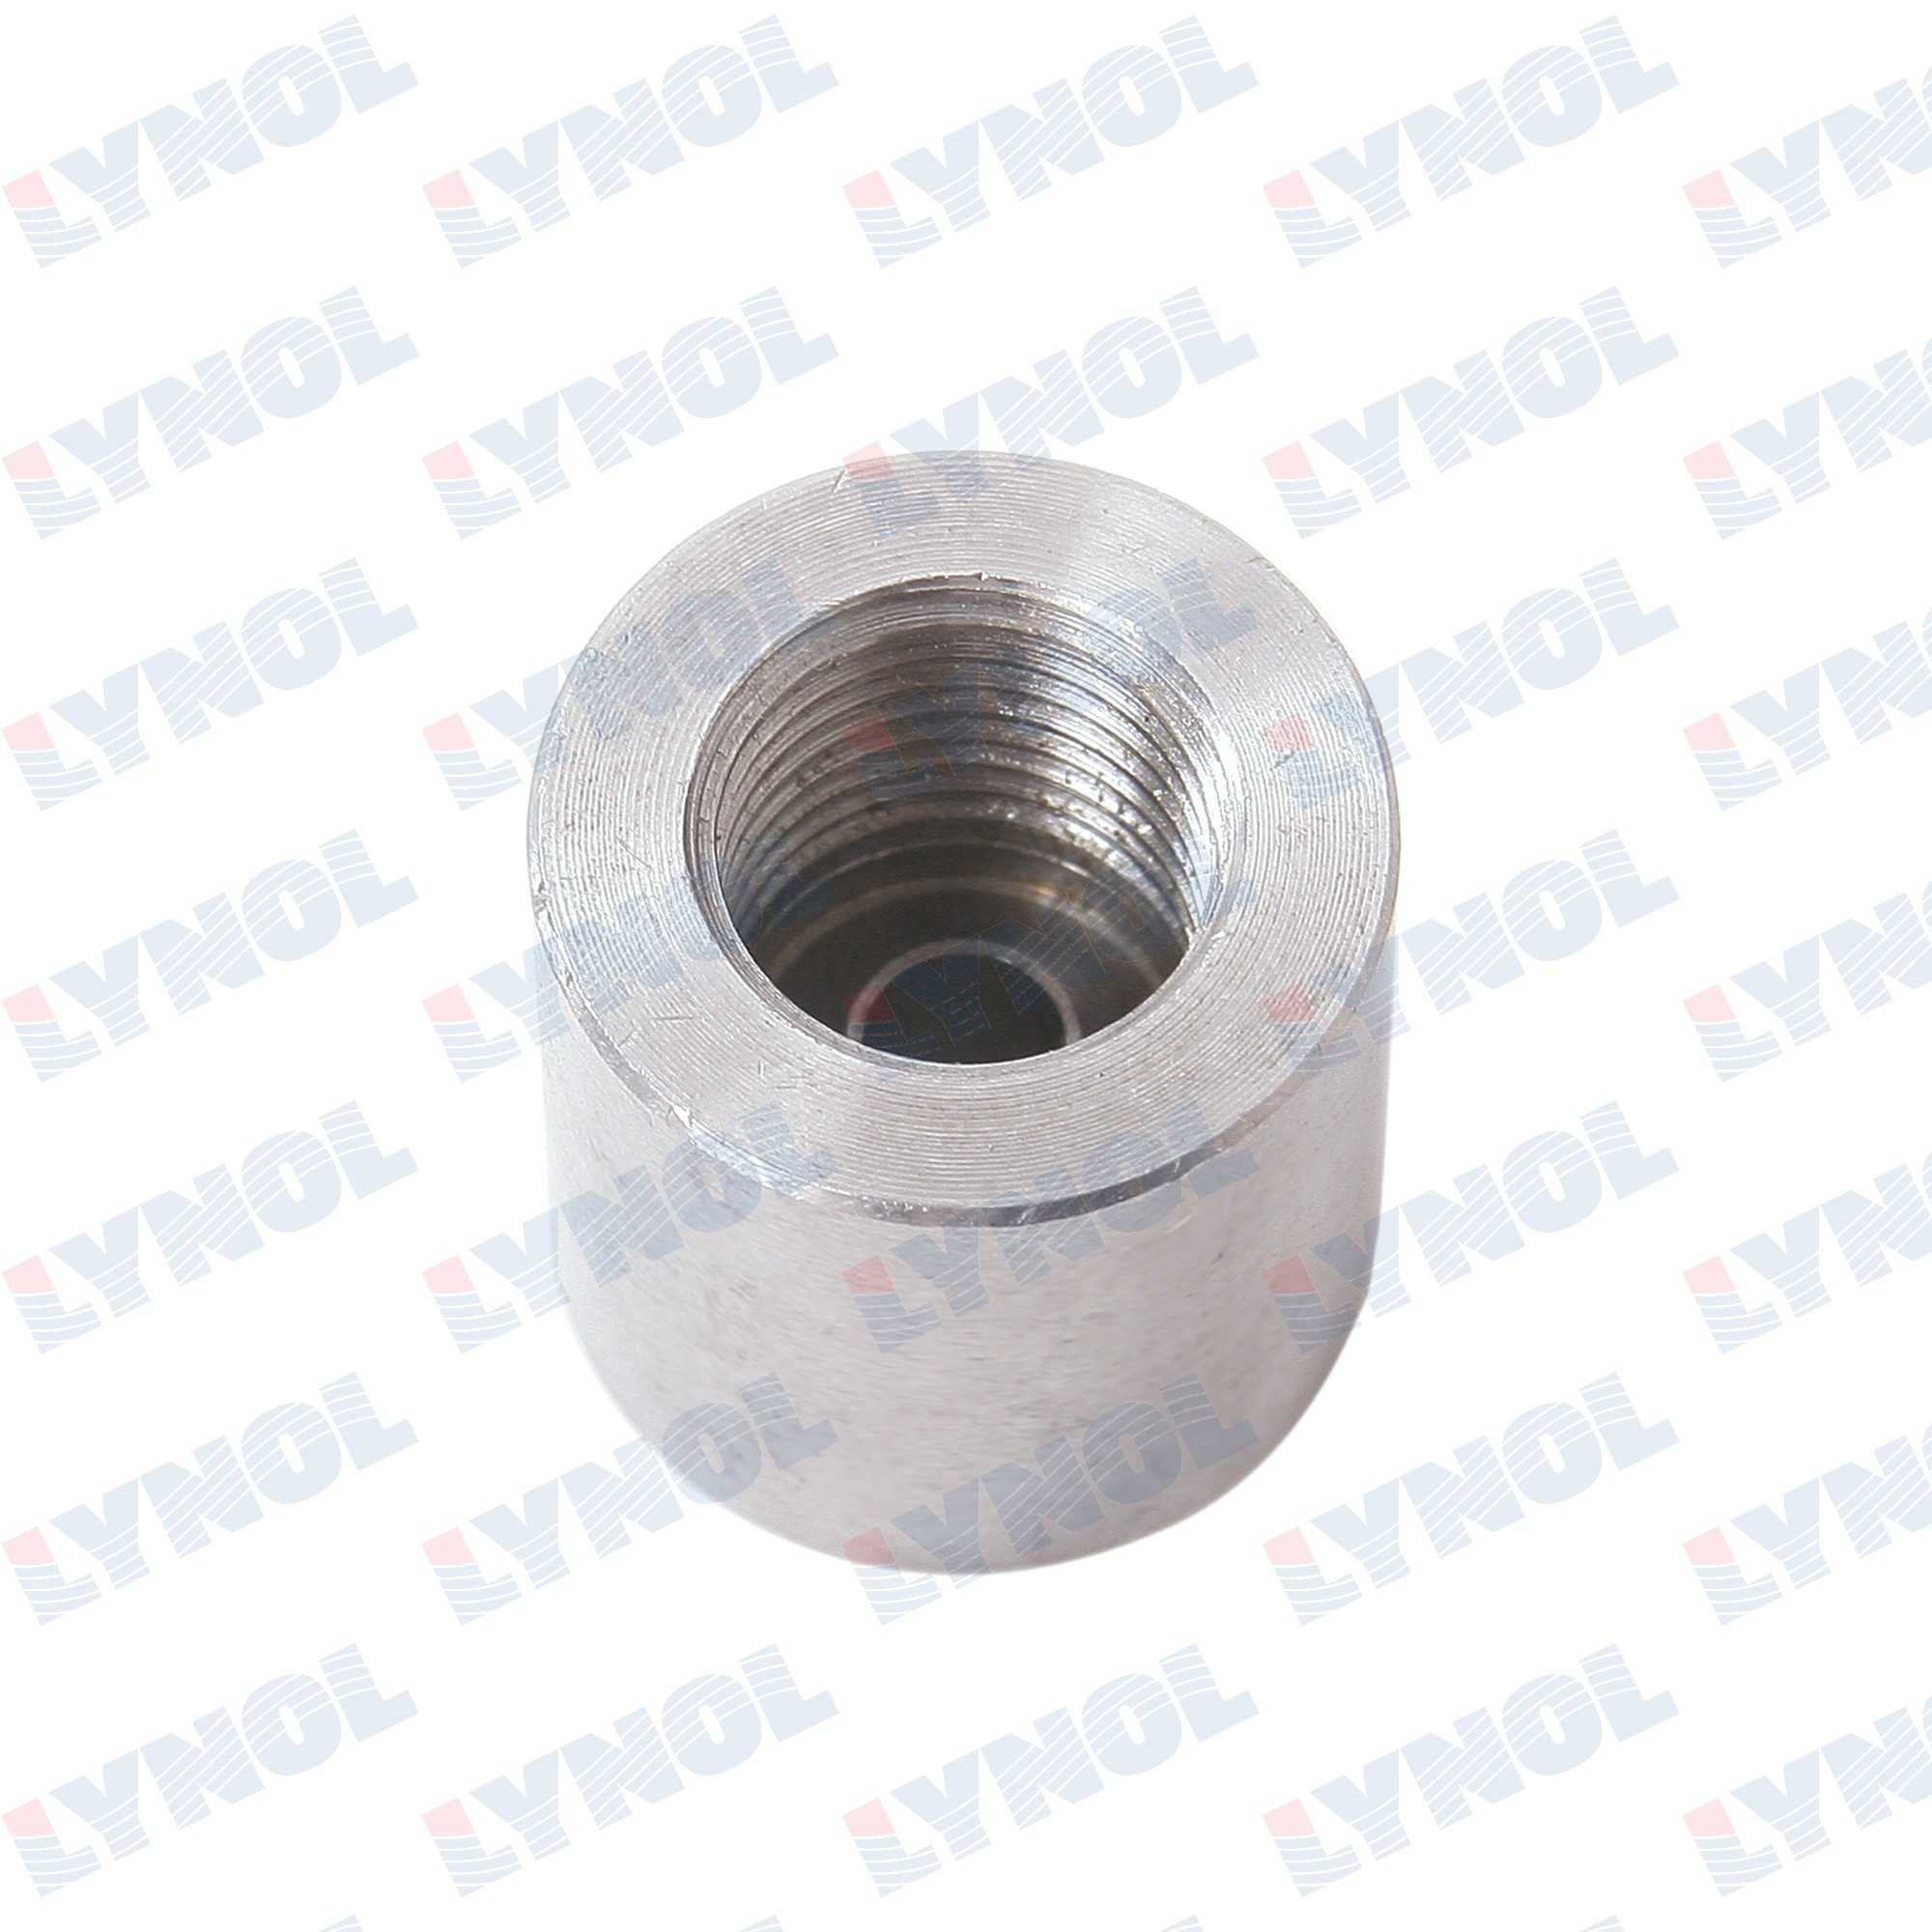 4504002 - SENSOR BUNG - M14*1.5 - Reverse Flare Overall Length 7/8'', Outside Diameter 7/8''